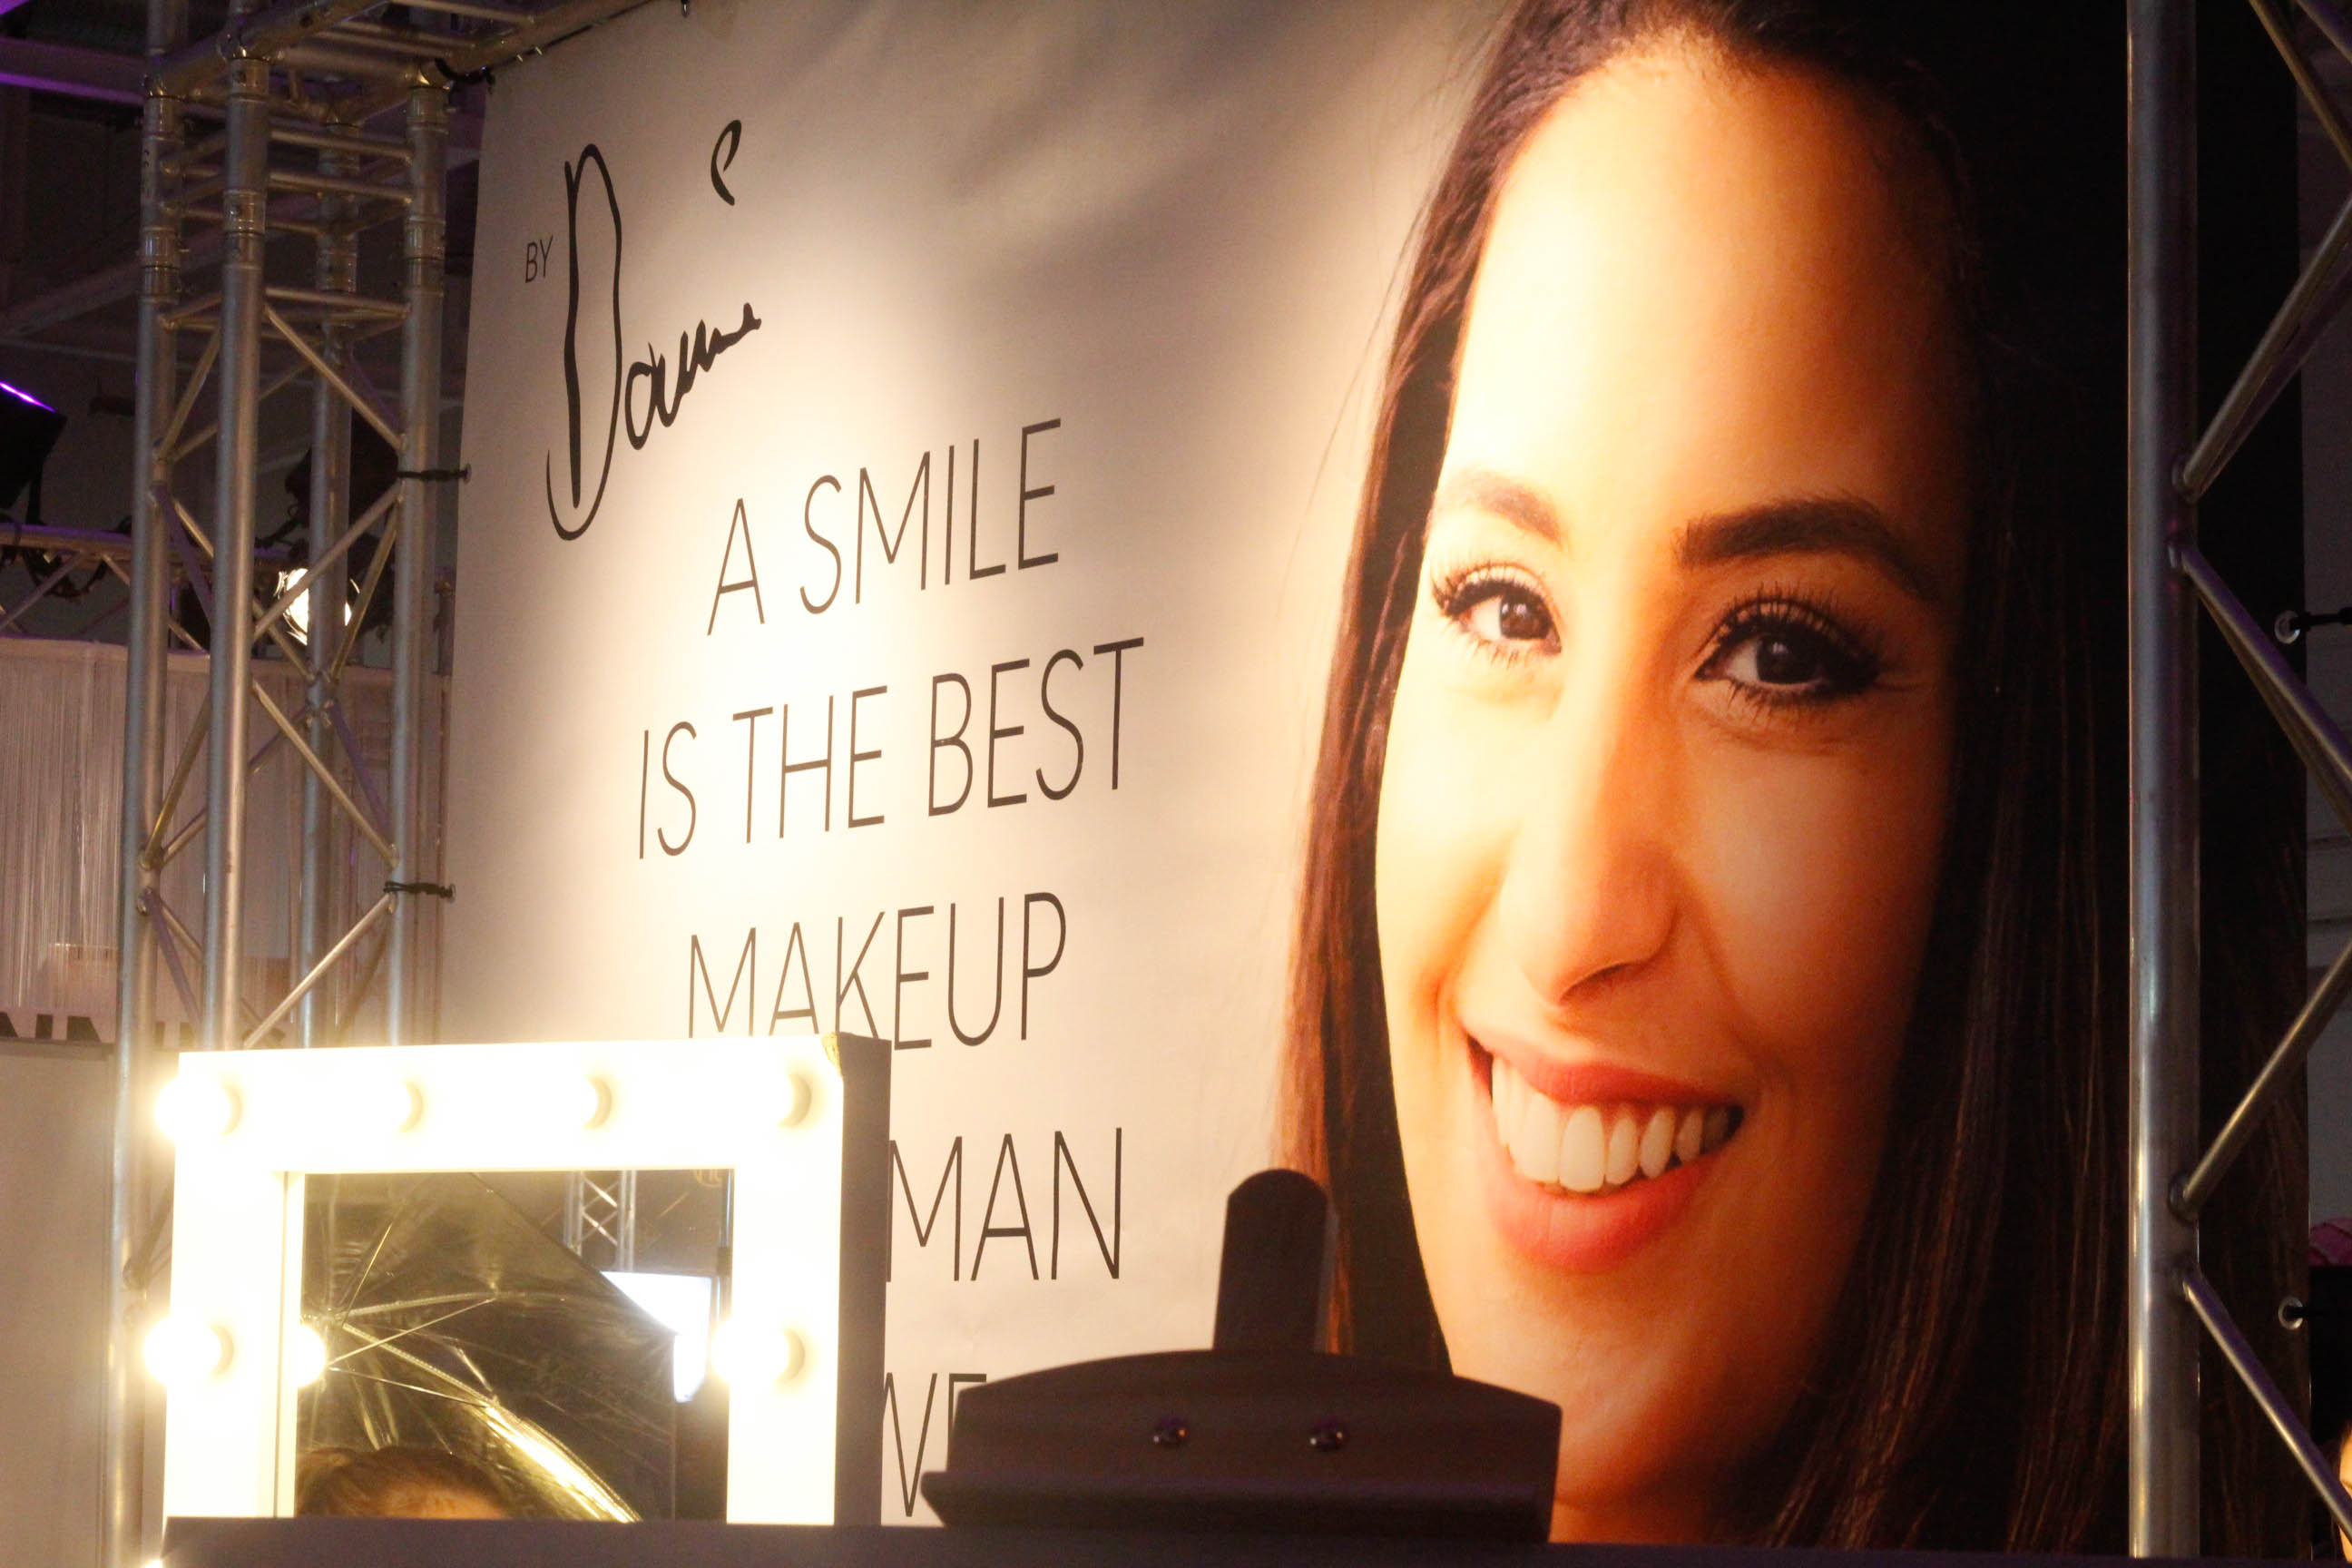 Lancome Messestand Glow Convention Hannover - Dounia Slimani Stand